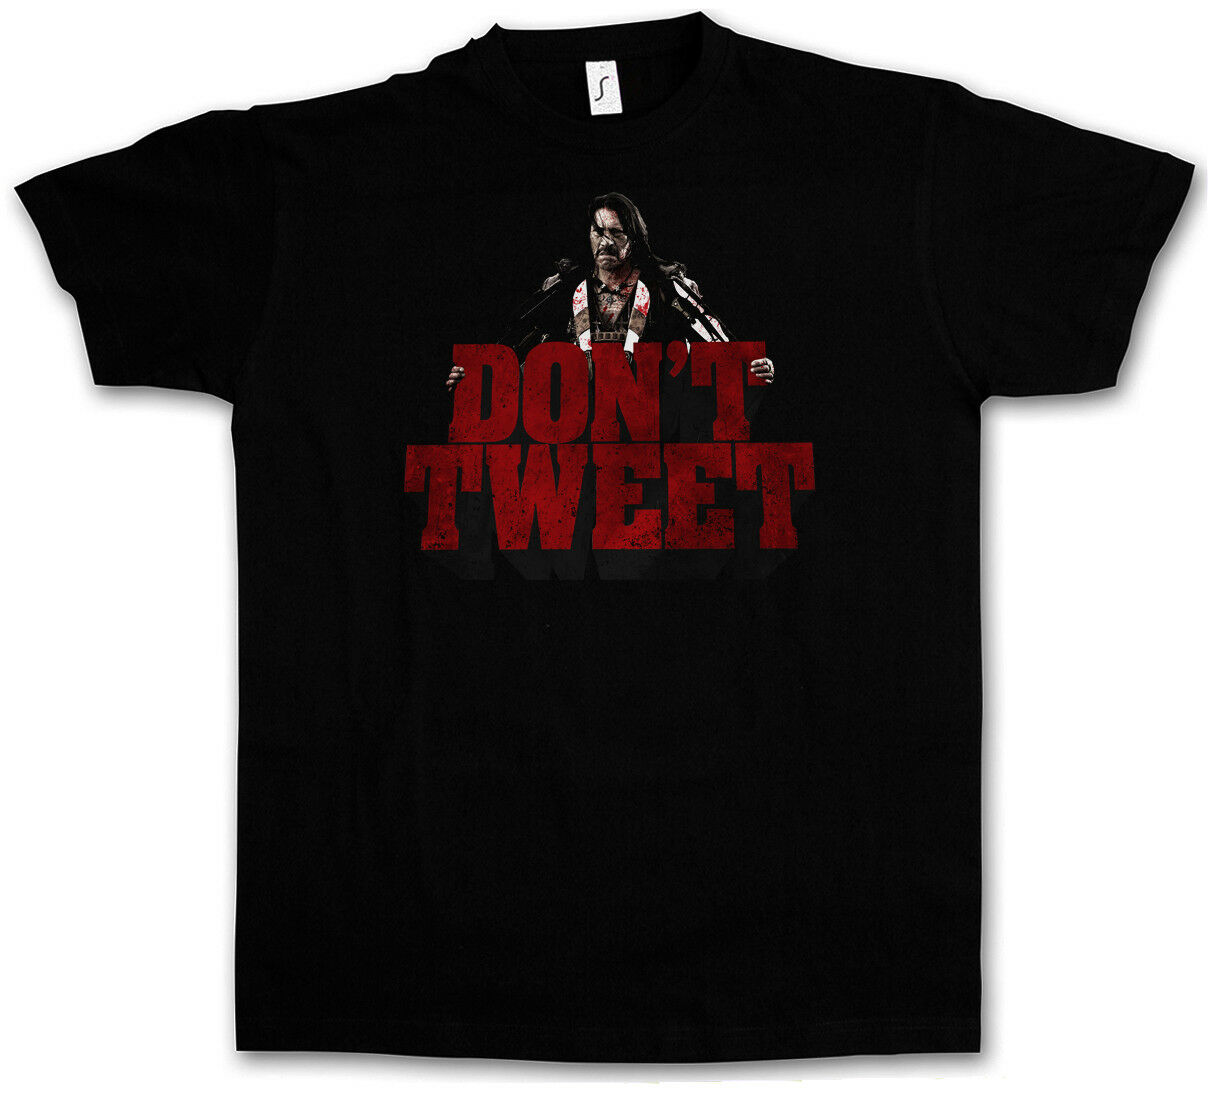 MACHETE DON?T TWEET T-SHIRT - Kills Again Rodriguez Trejo in Space Movie T-Shirt image